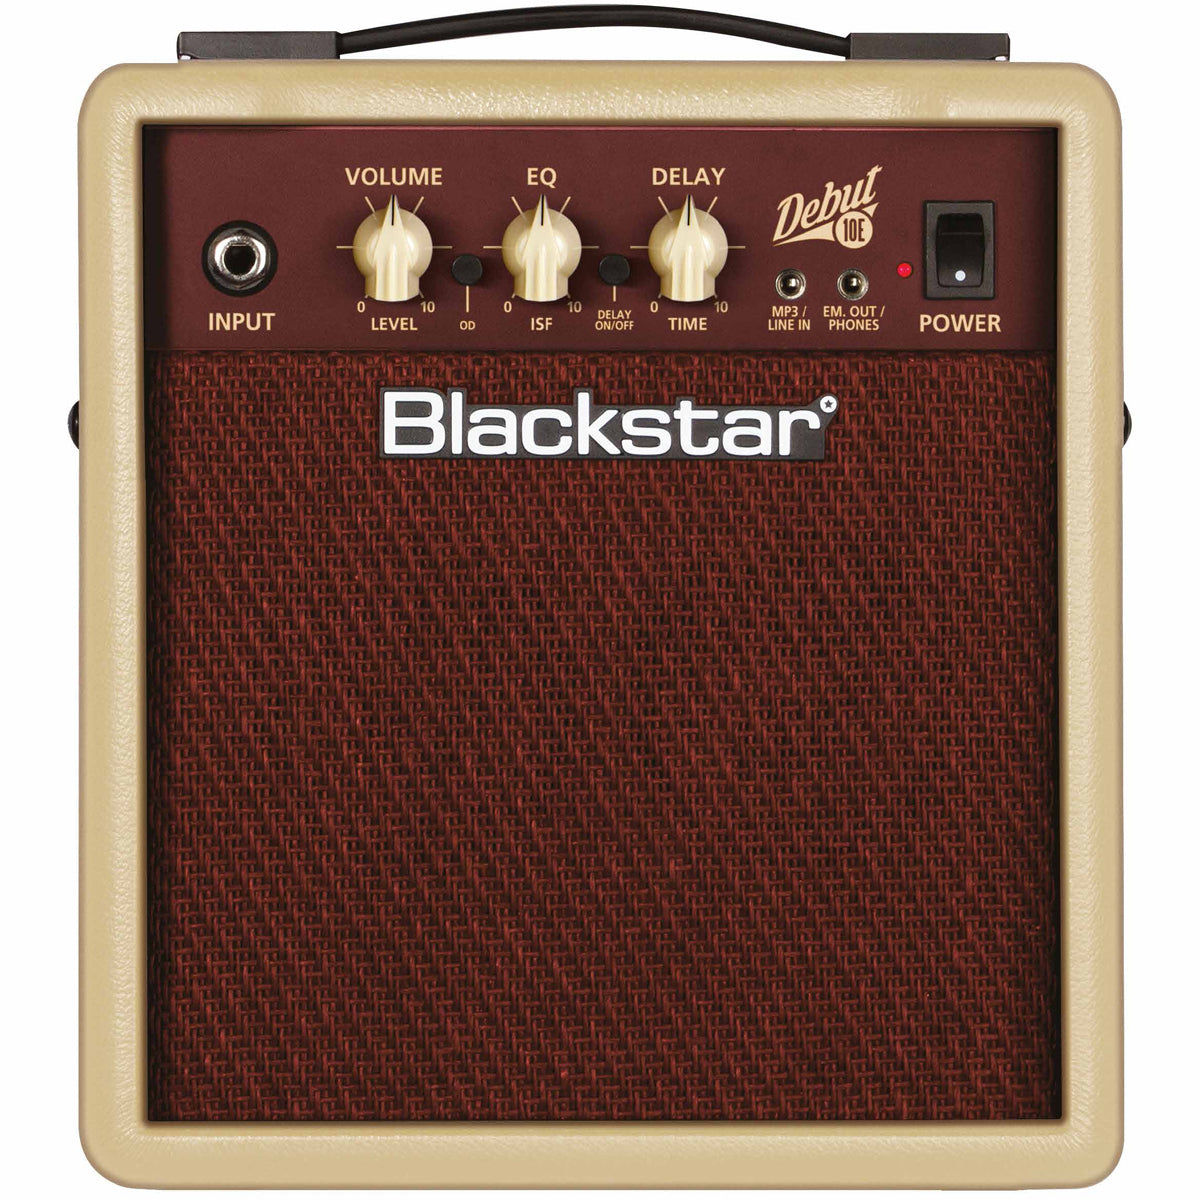 Blackstar Debut 10 Guitar Amplifier 10w Amp w/ FX